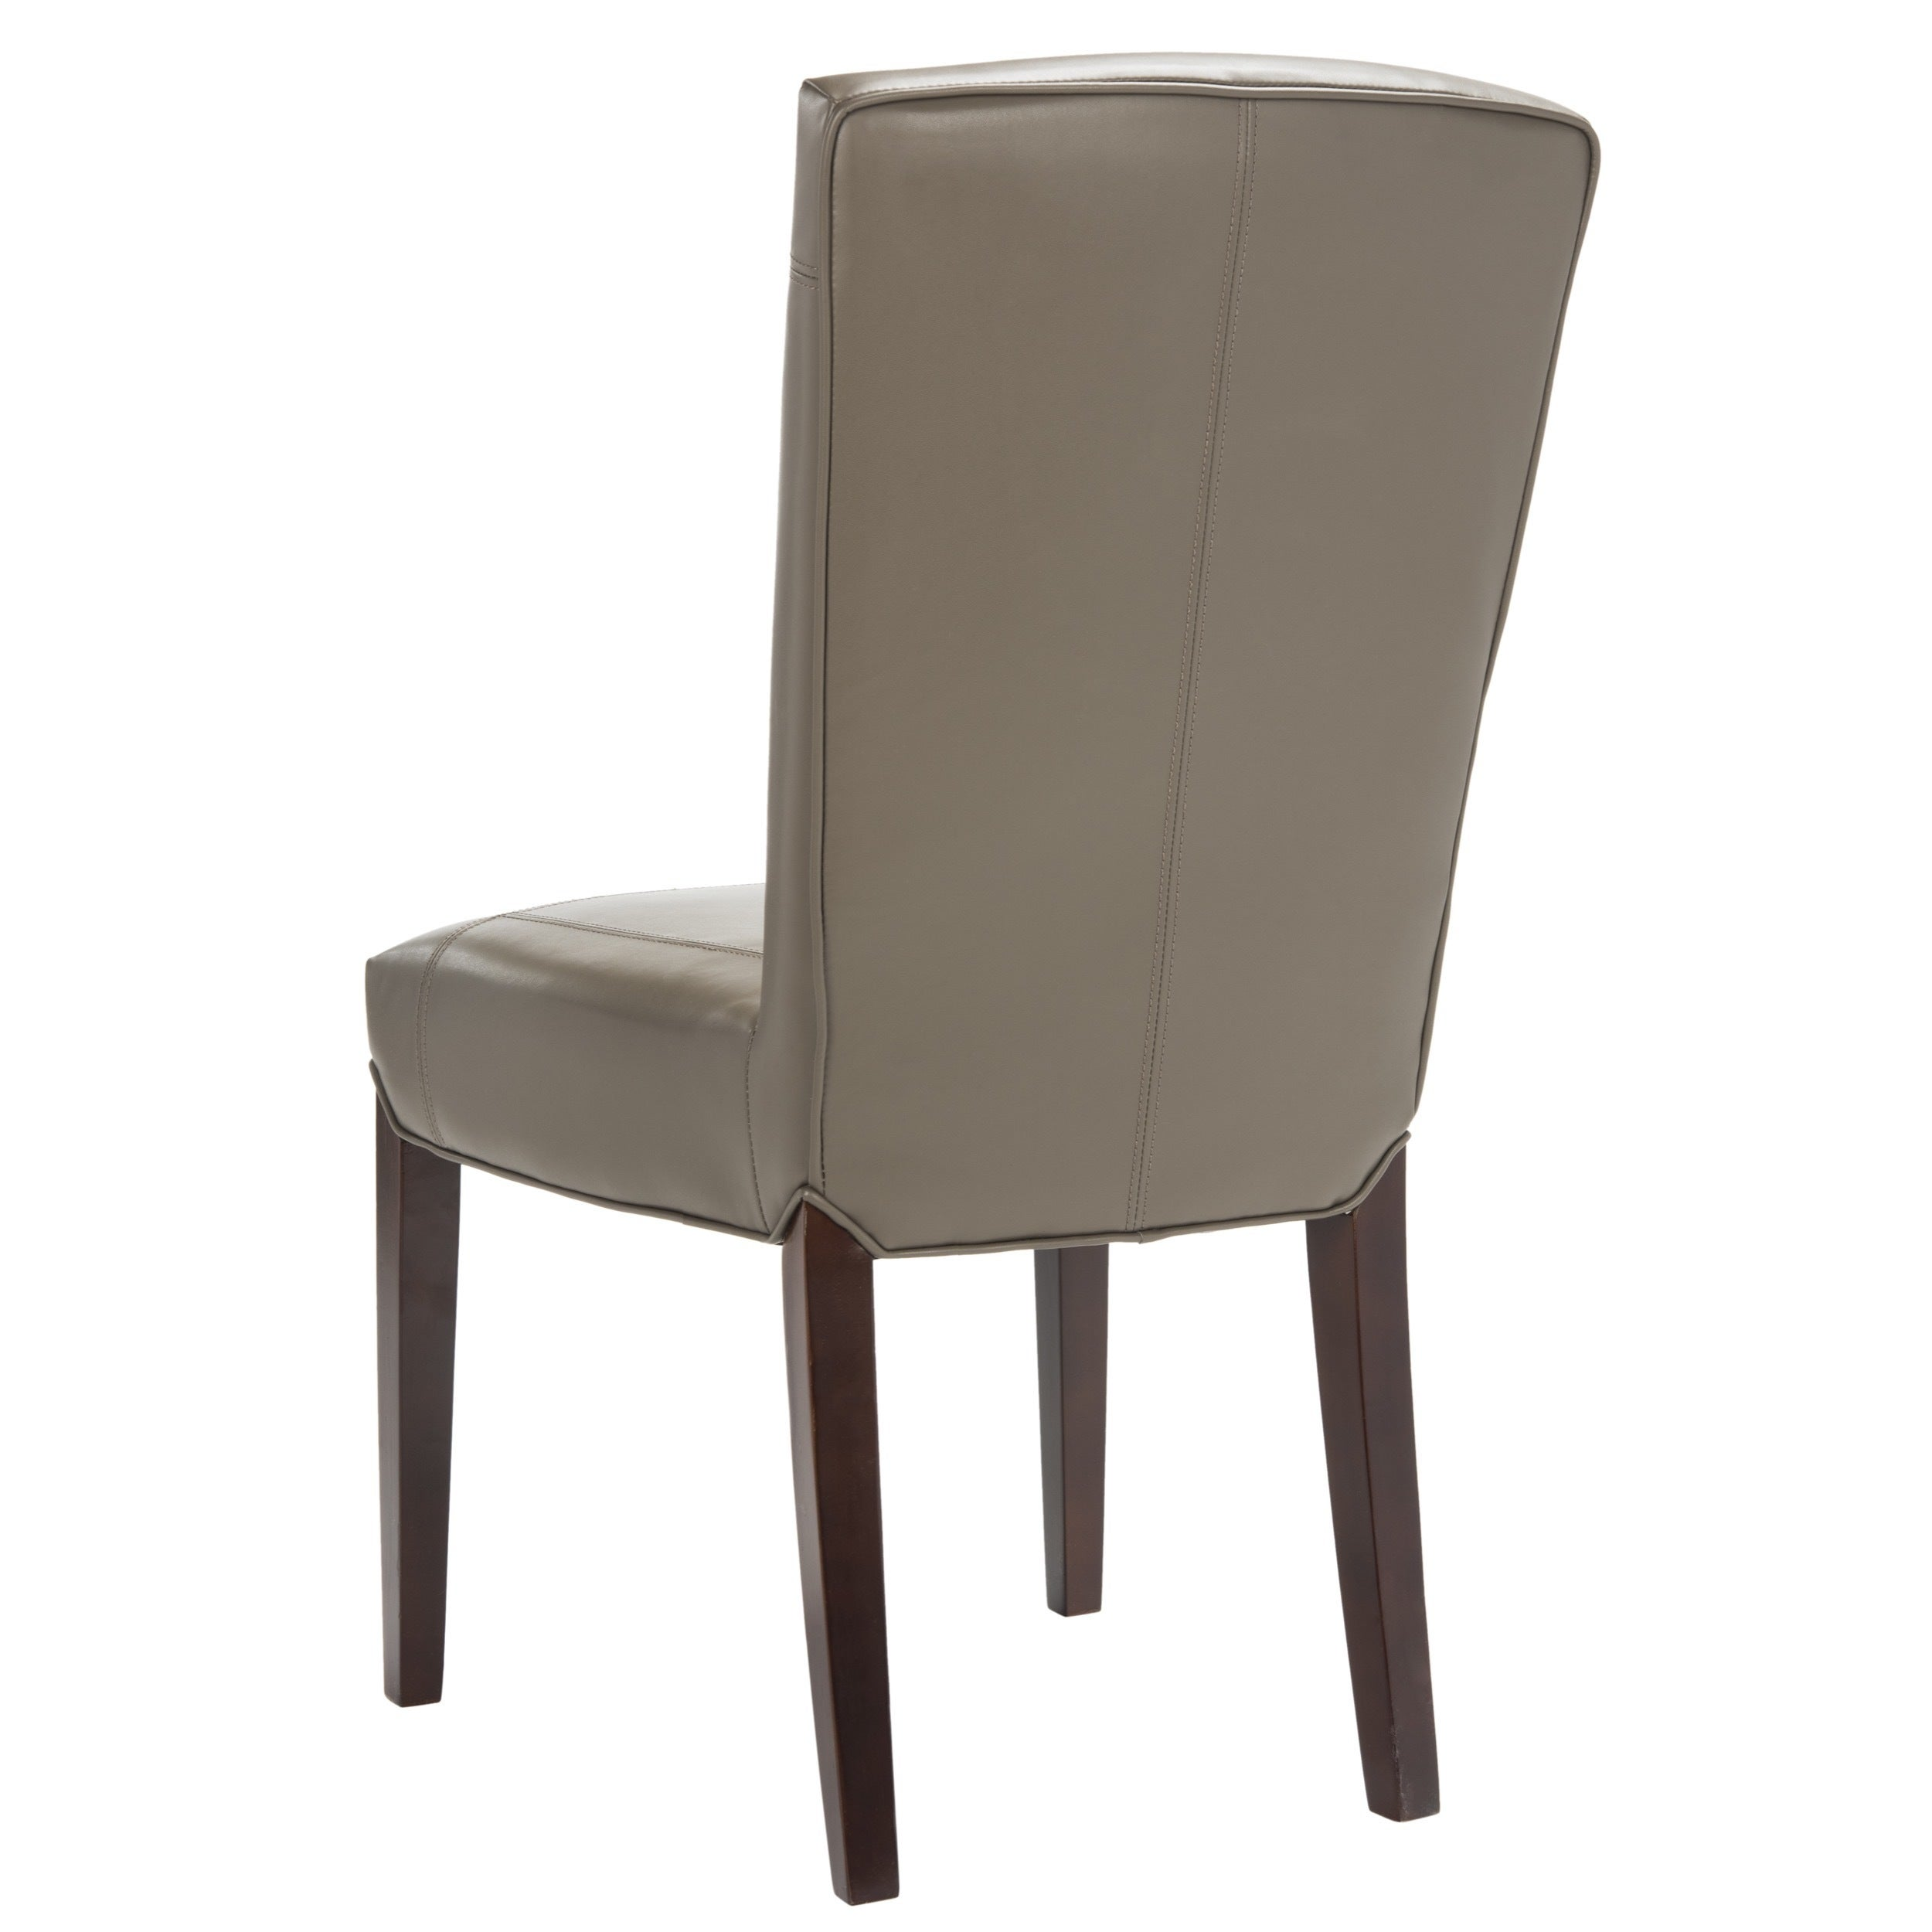 Safavieh Parsons Dining Bowery Brown Clay Leather Dining Chairs (Set Of 2)    Free Shipping Today   Overstock   13203439